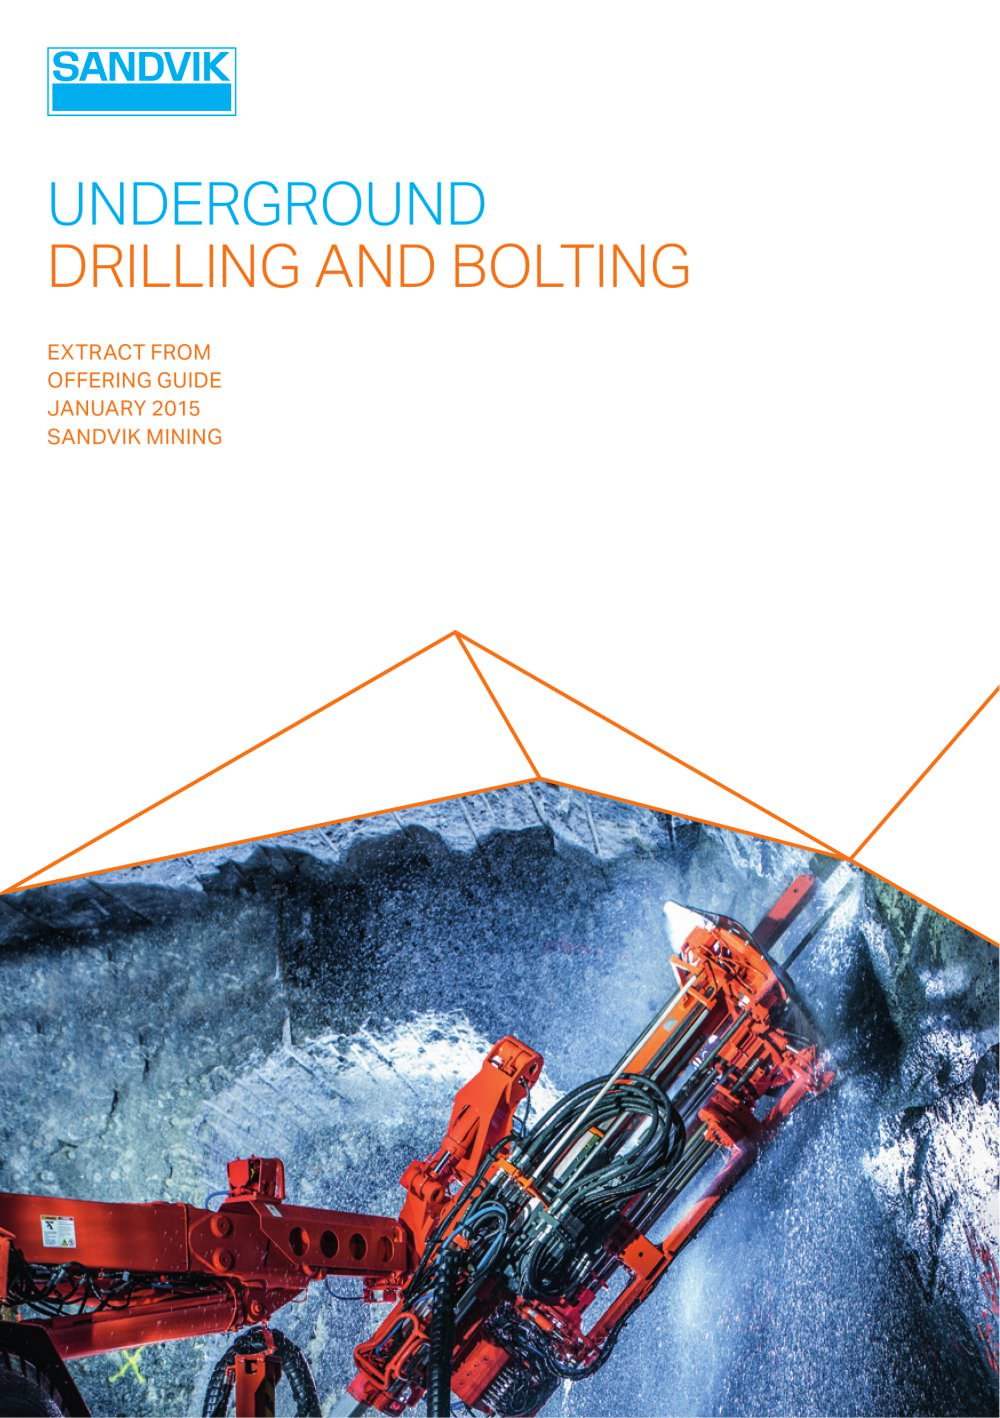 Sandvik underground drilling and bolting - 1 / 24 Pages